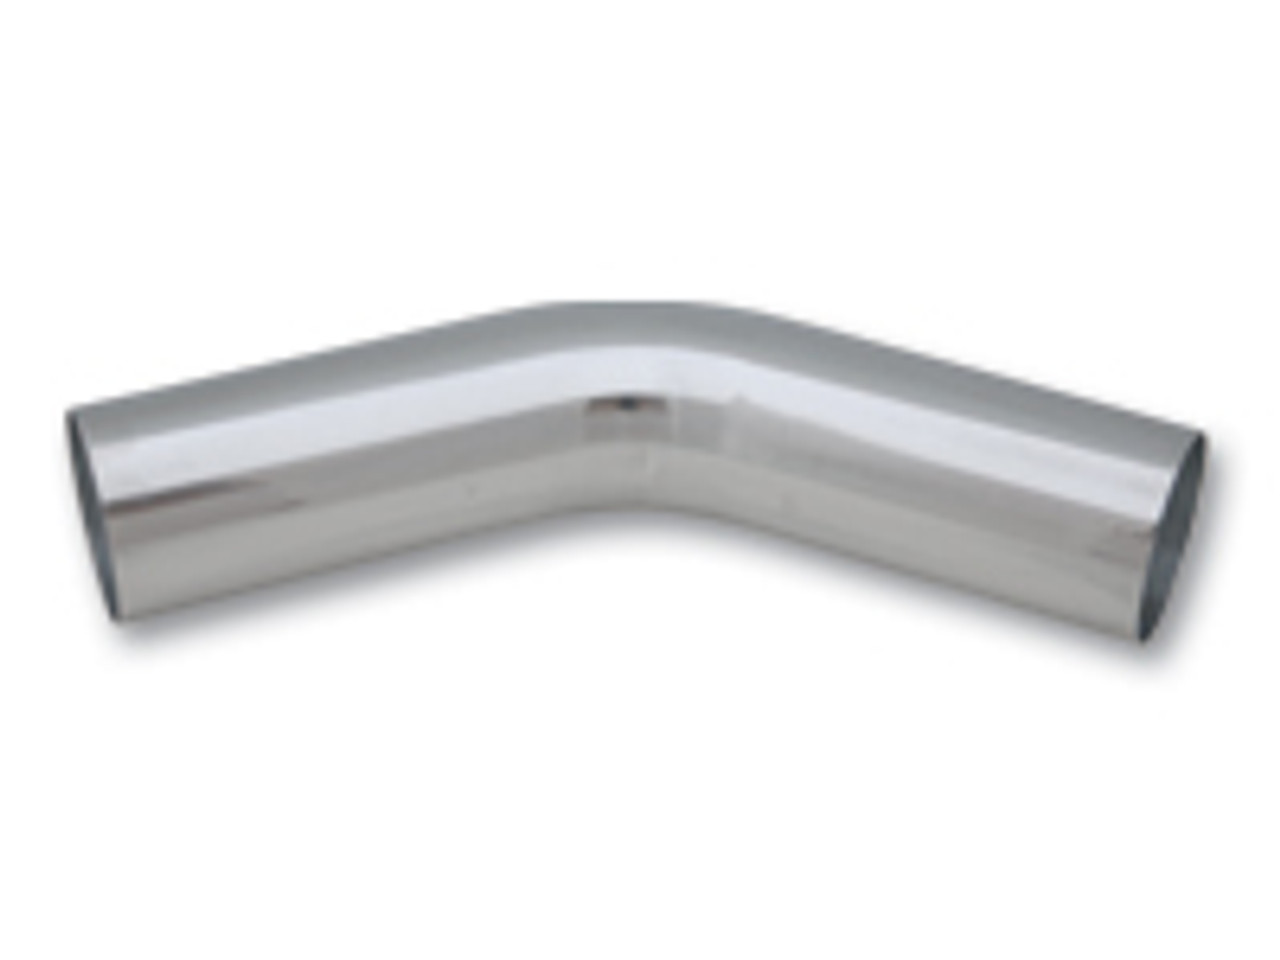 Vibrant 2.25in O.D. Universal Aluminum Tubing (45 degree bend) - Polished